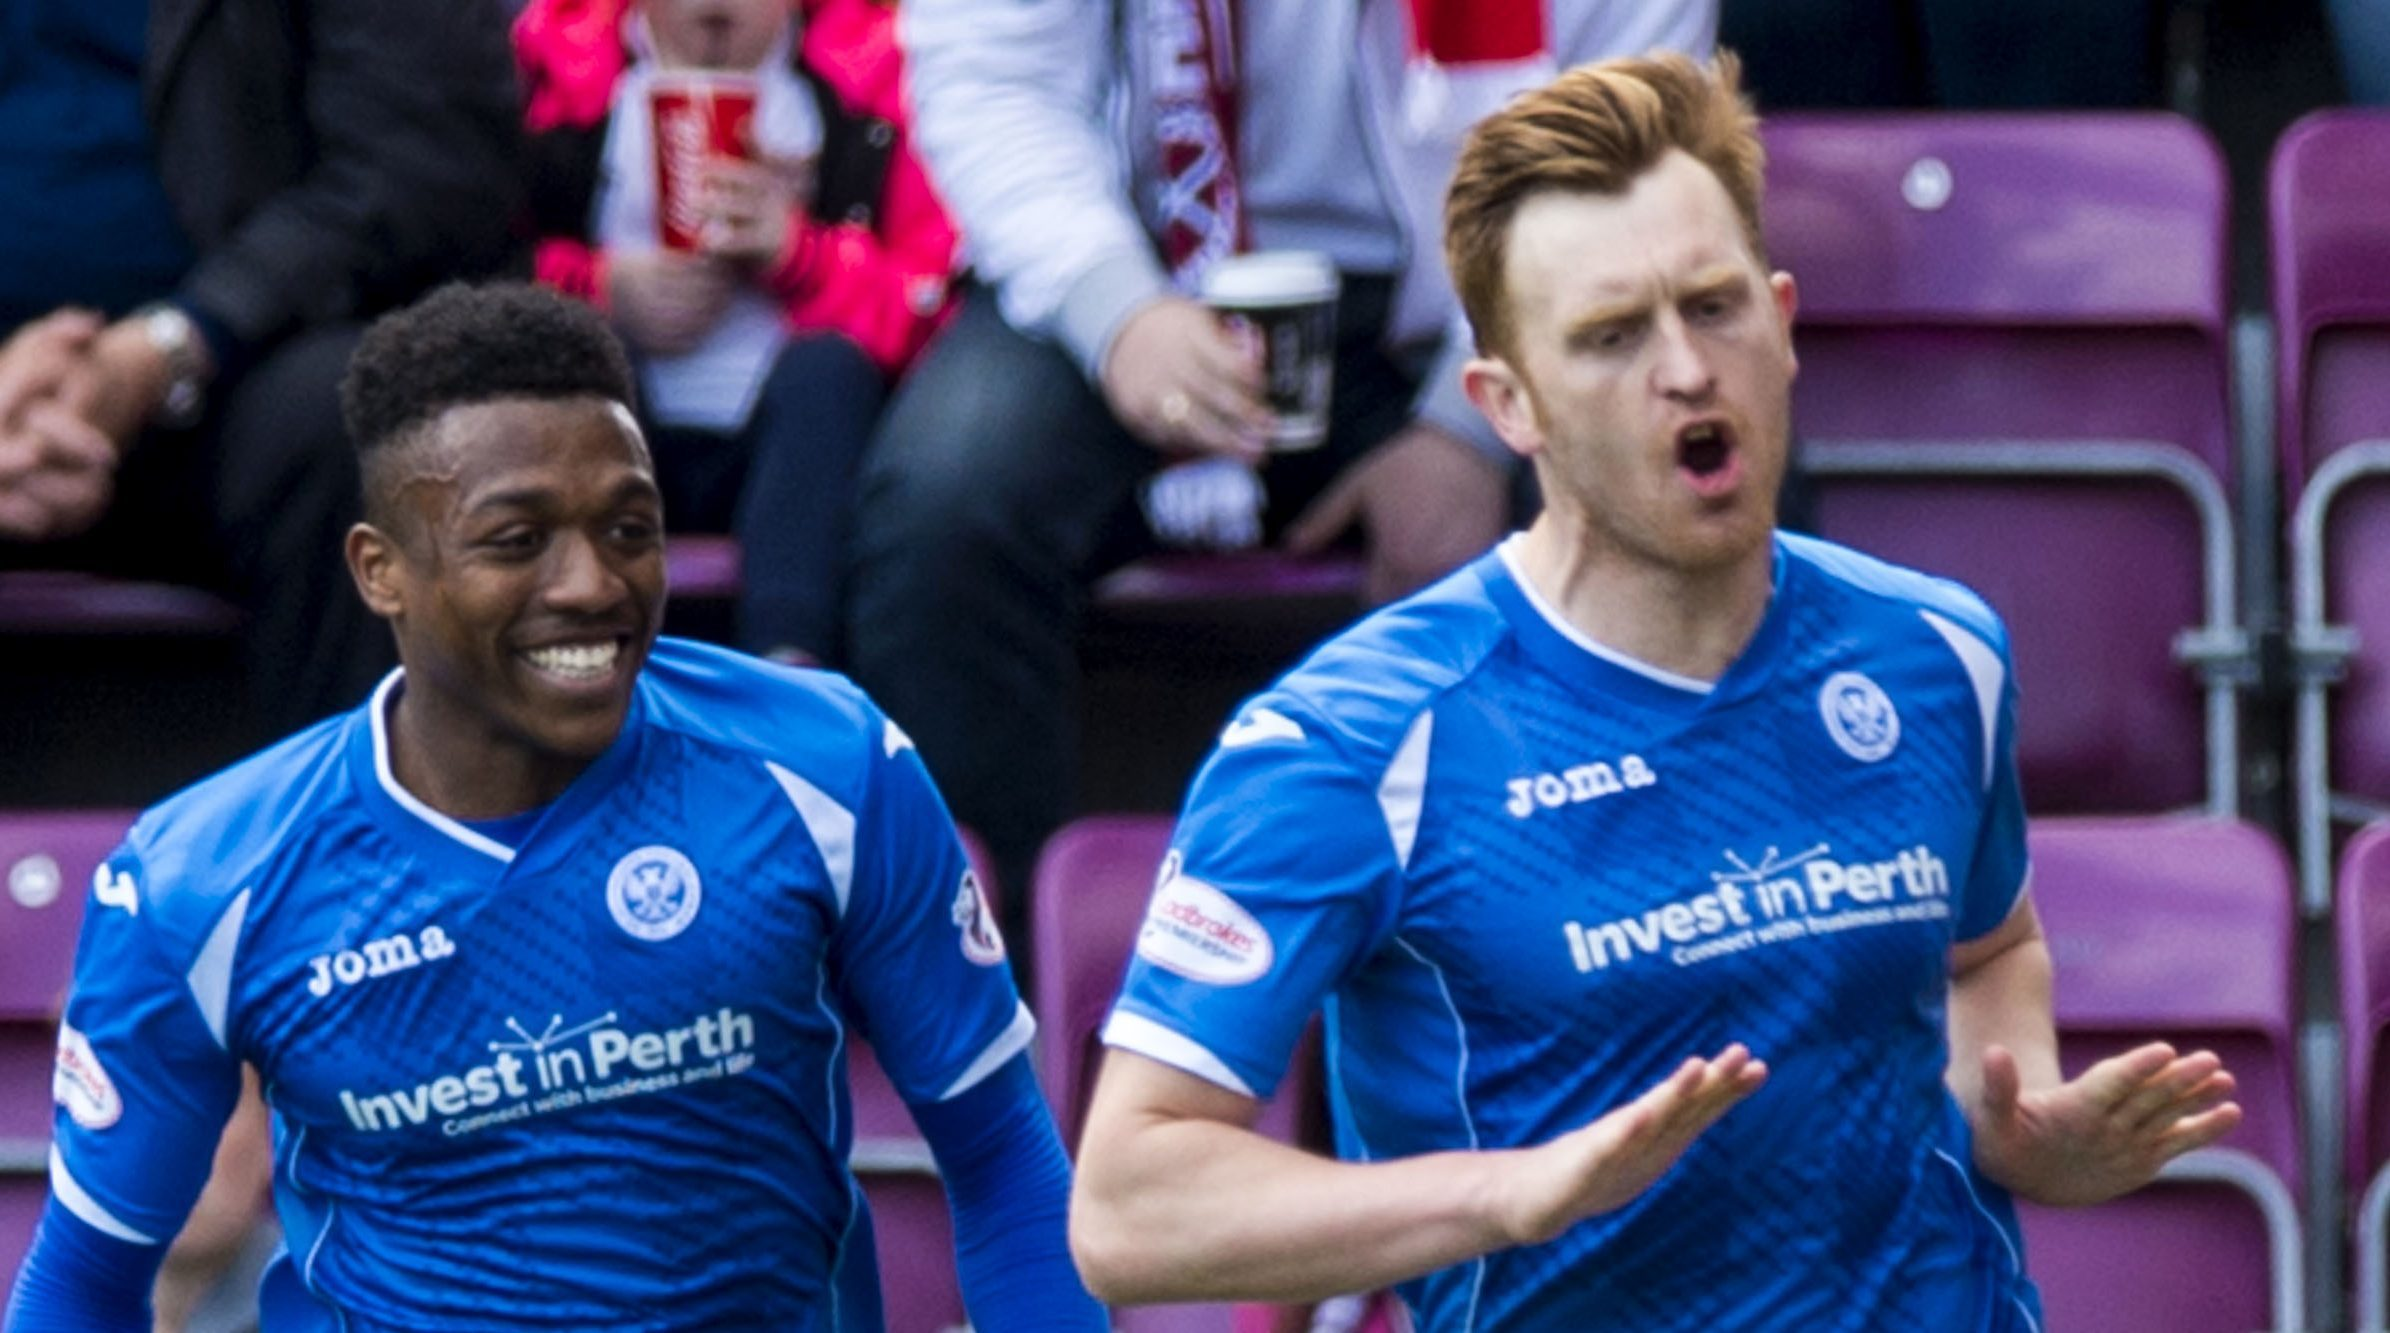 St Johnstone's Liam Craig celebrates his goal.